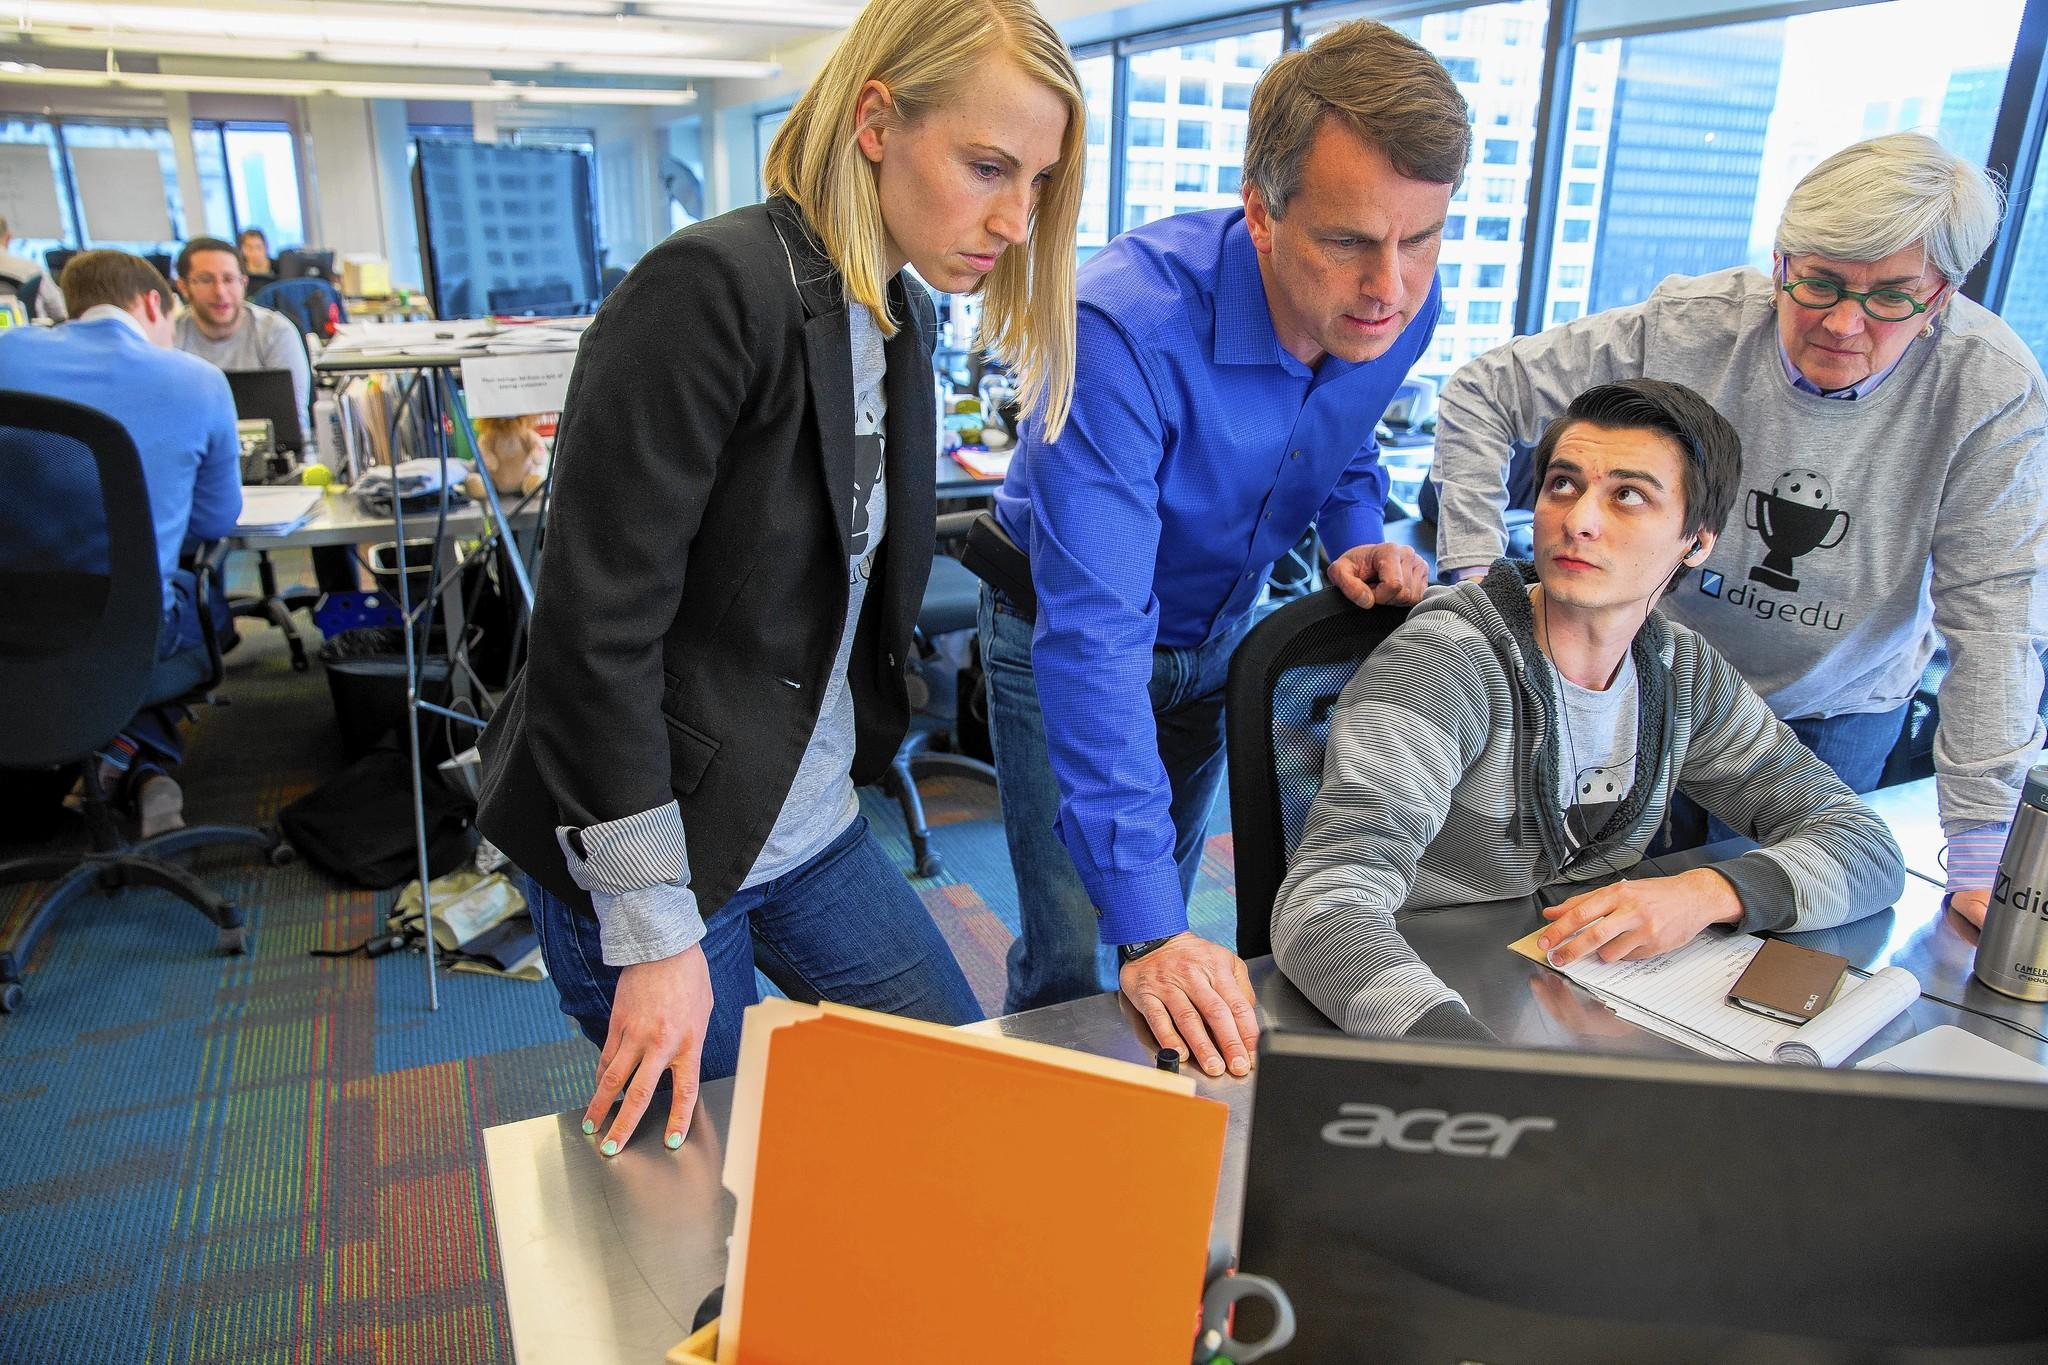 7wire Ventures co-founder and managing partner Glen Tullman, second from left, works at the startup's Chicago office alongside Jennifer Shike, left, Denise Foy, right, and Dennis Briciu.